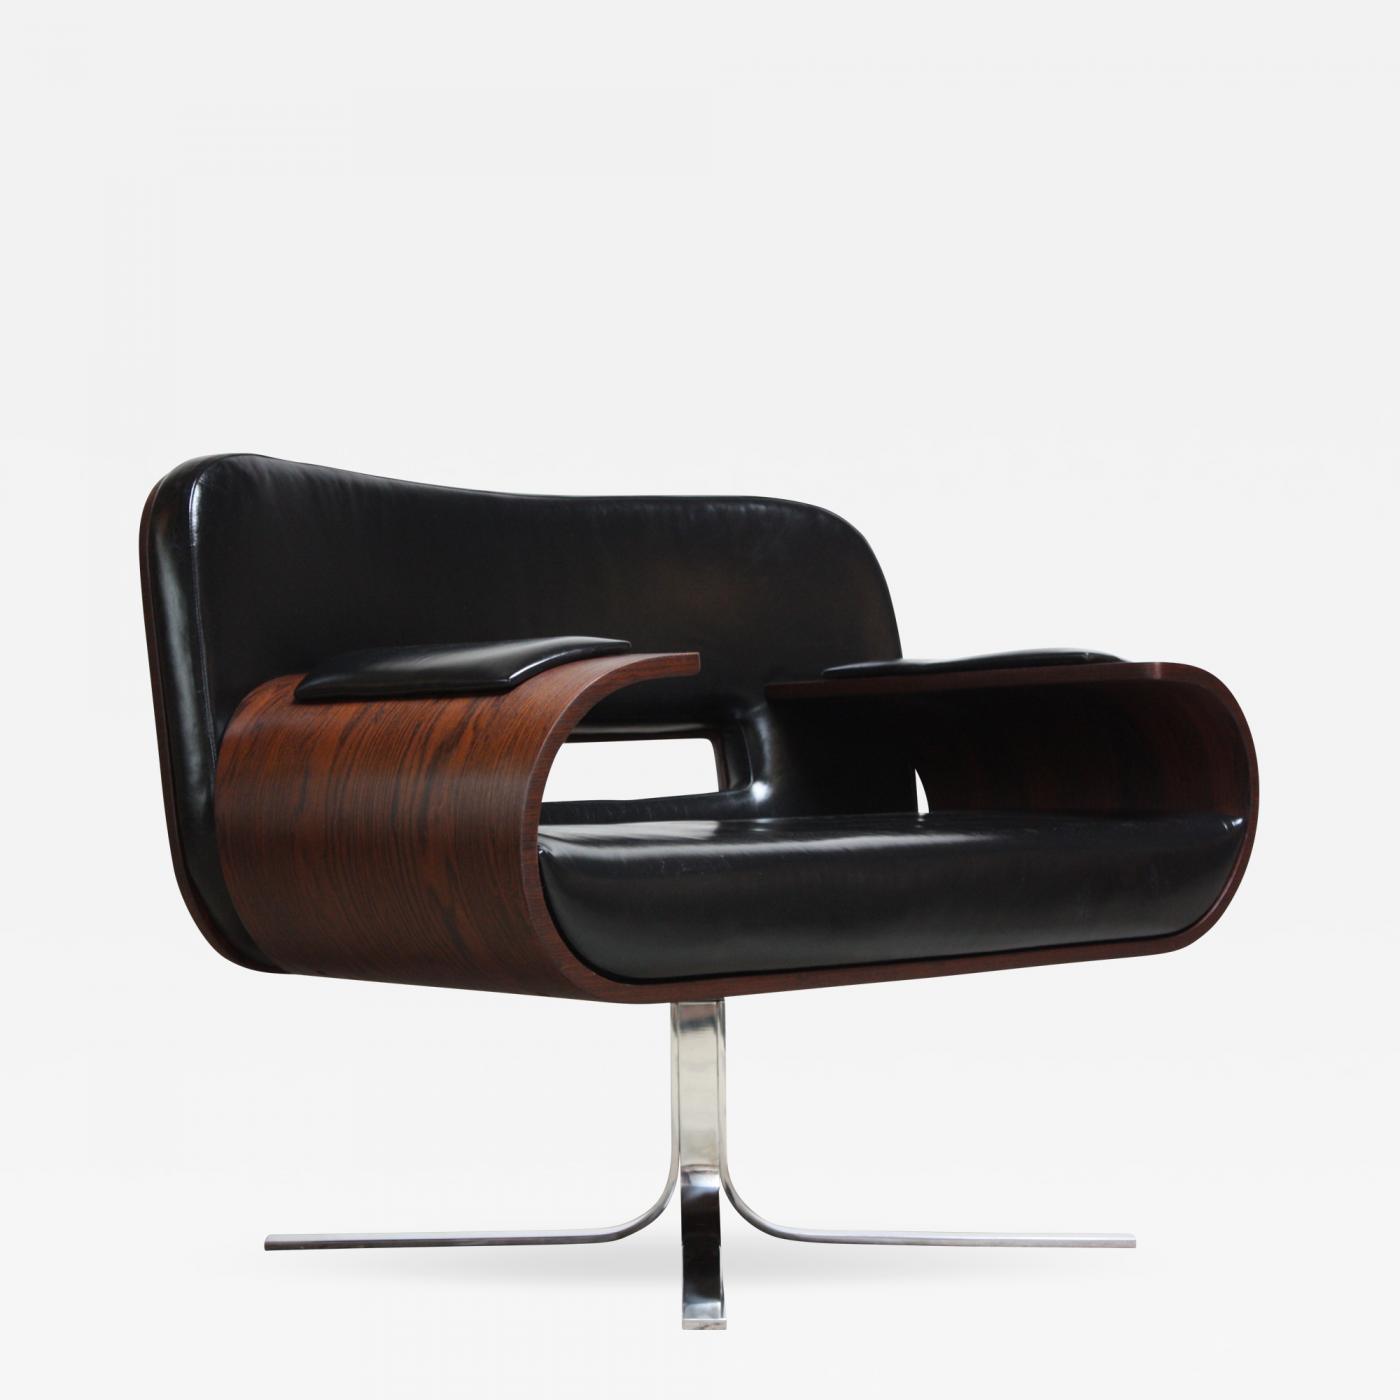 Modern Leather Chairs Jorge Zalszupin Brazilian Modern Jacaranda And Leather Swiveling Lounge Chair By Jorge Zalszupin